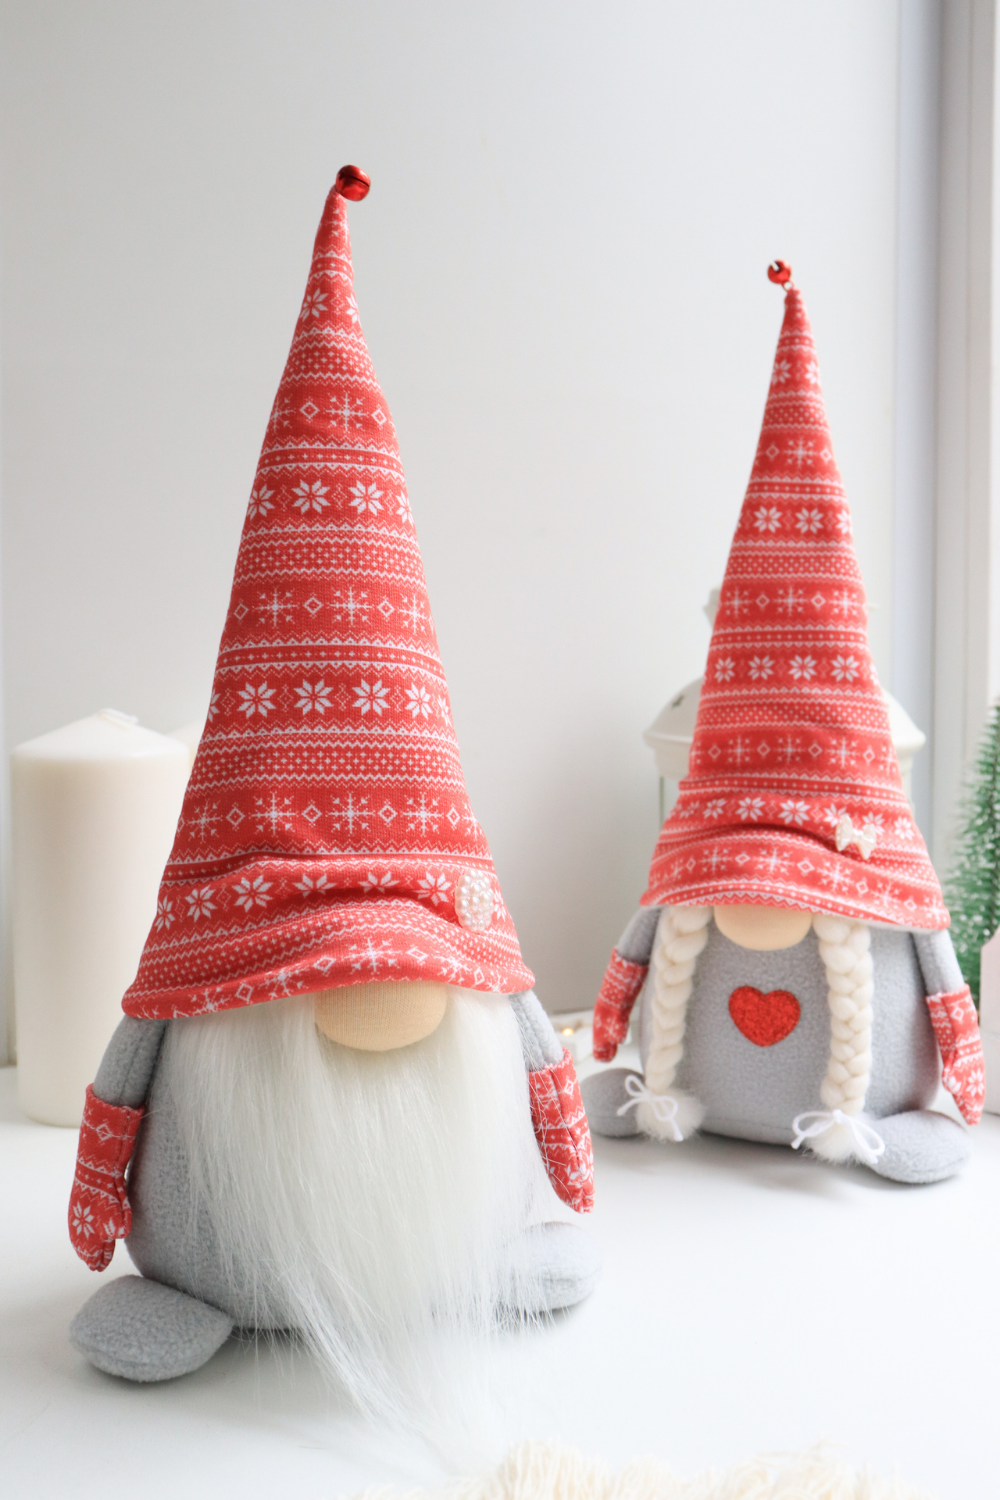 Scandinavian Christmas Gnomes Couple Swedish Holiday Home Decor New Year Gift In 2020 Christmas Gnome Unique Christmas Gifts Scandinavian Christmas